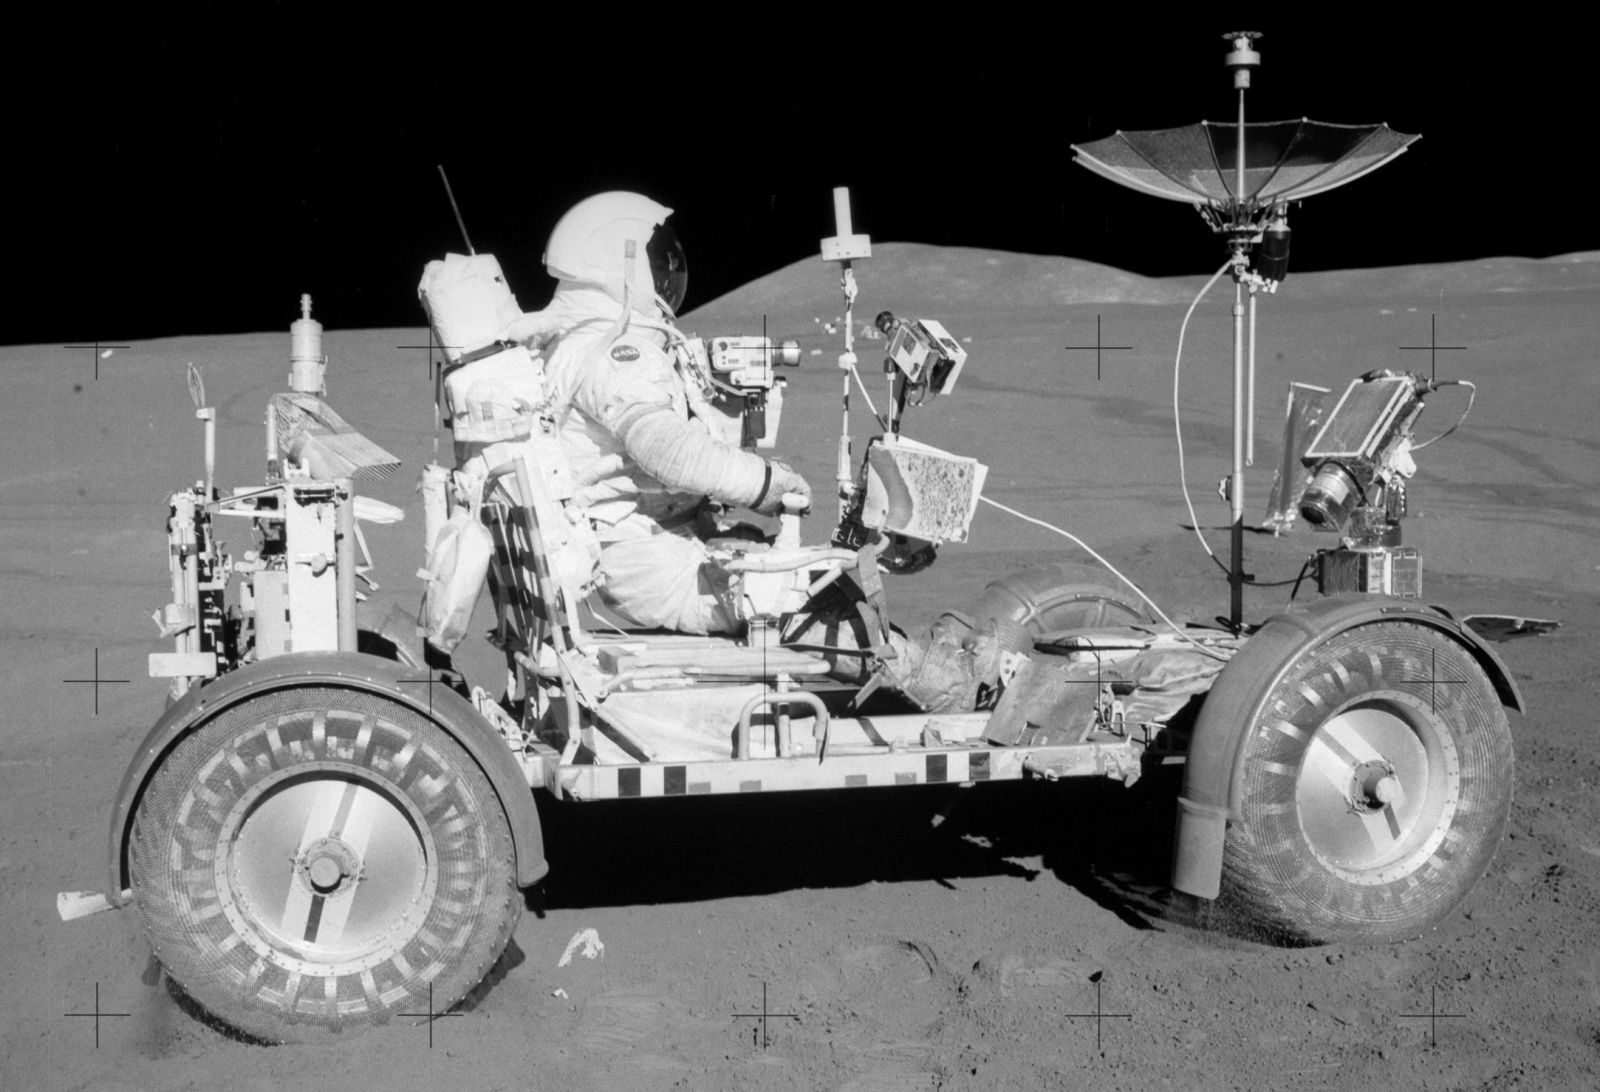 Moon Buggy Diy Students Create Lunar Rover Replica Spaceflight Insider